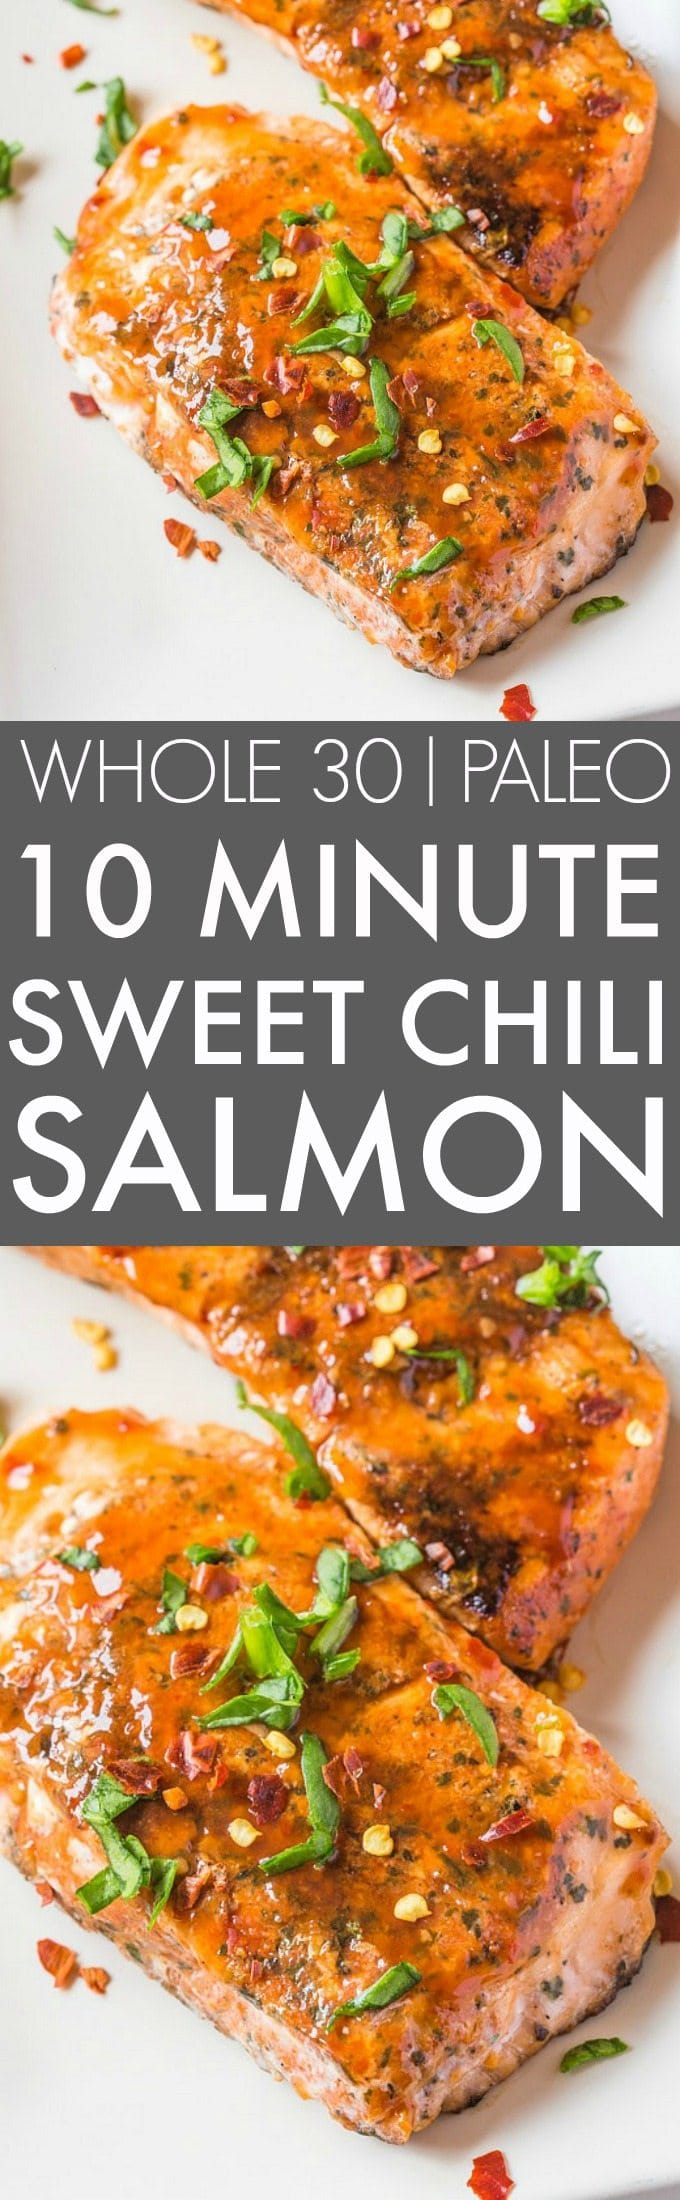 Easy 10 Minute Sweet Chili Salmon (Whole 30, Paleo)- Whole30 friendly sweet chilli/chili salmon seared in TEN minutes- SO flavorful and perfect low carb, high protein meal! {paleo, whole30, gluten free}- thebigmansworld.com